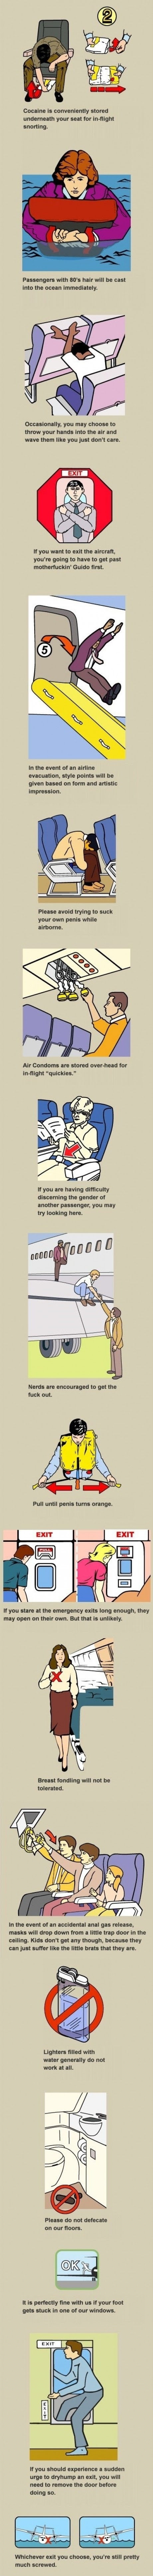 Airline Safety Rules